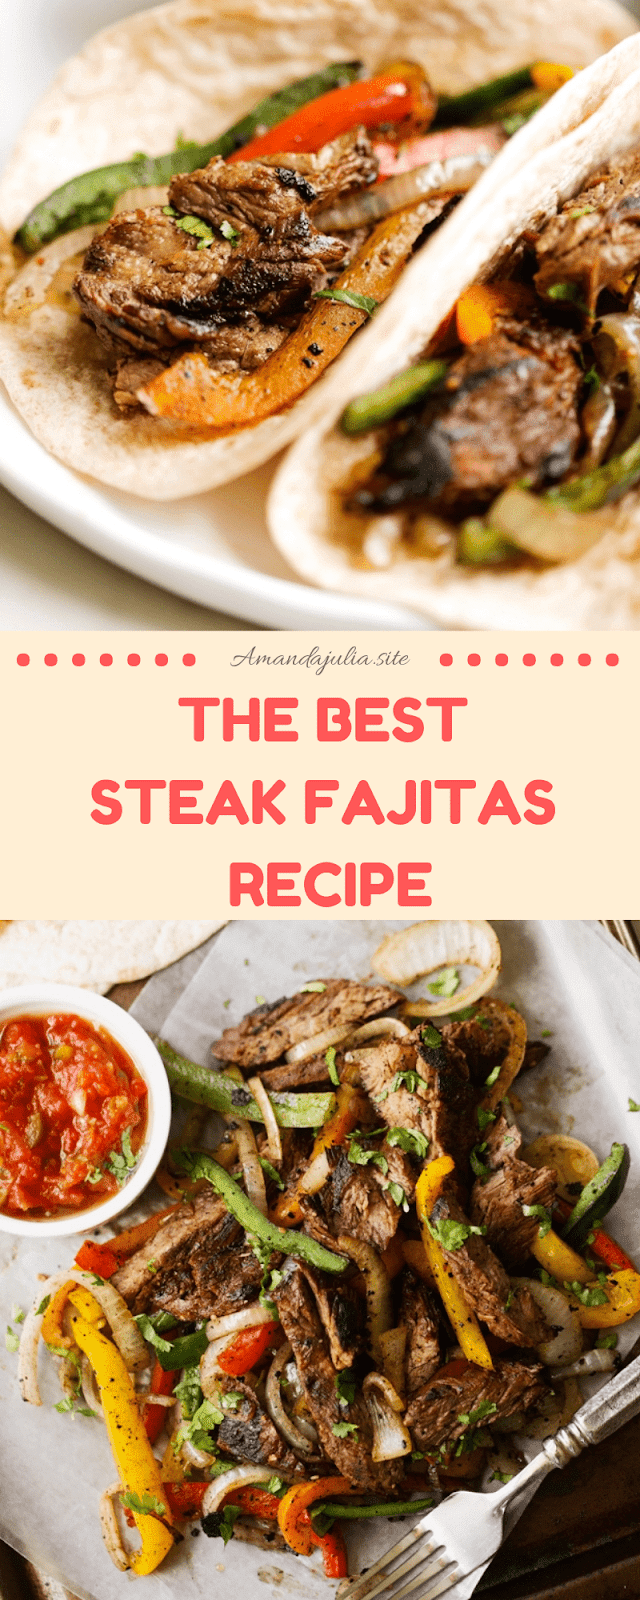 THE BEST Steak Fajitas Recipe #steakfajitarecipe